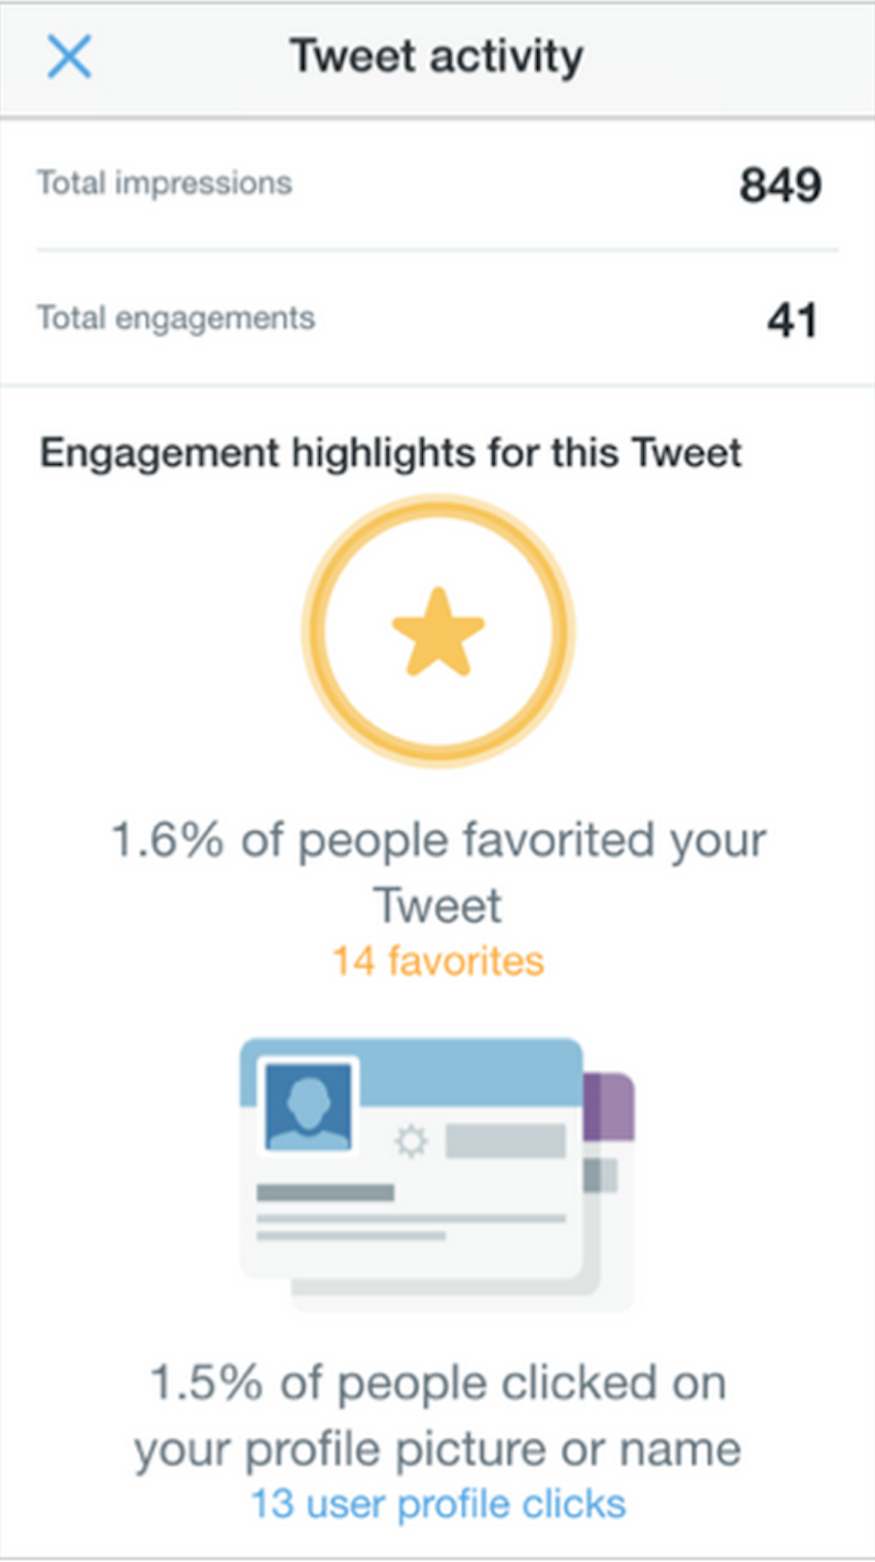 Tweet activity data for single tweet